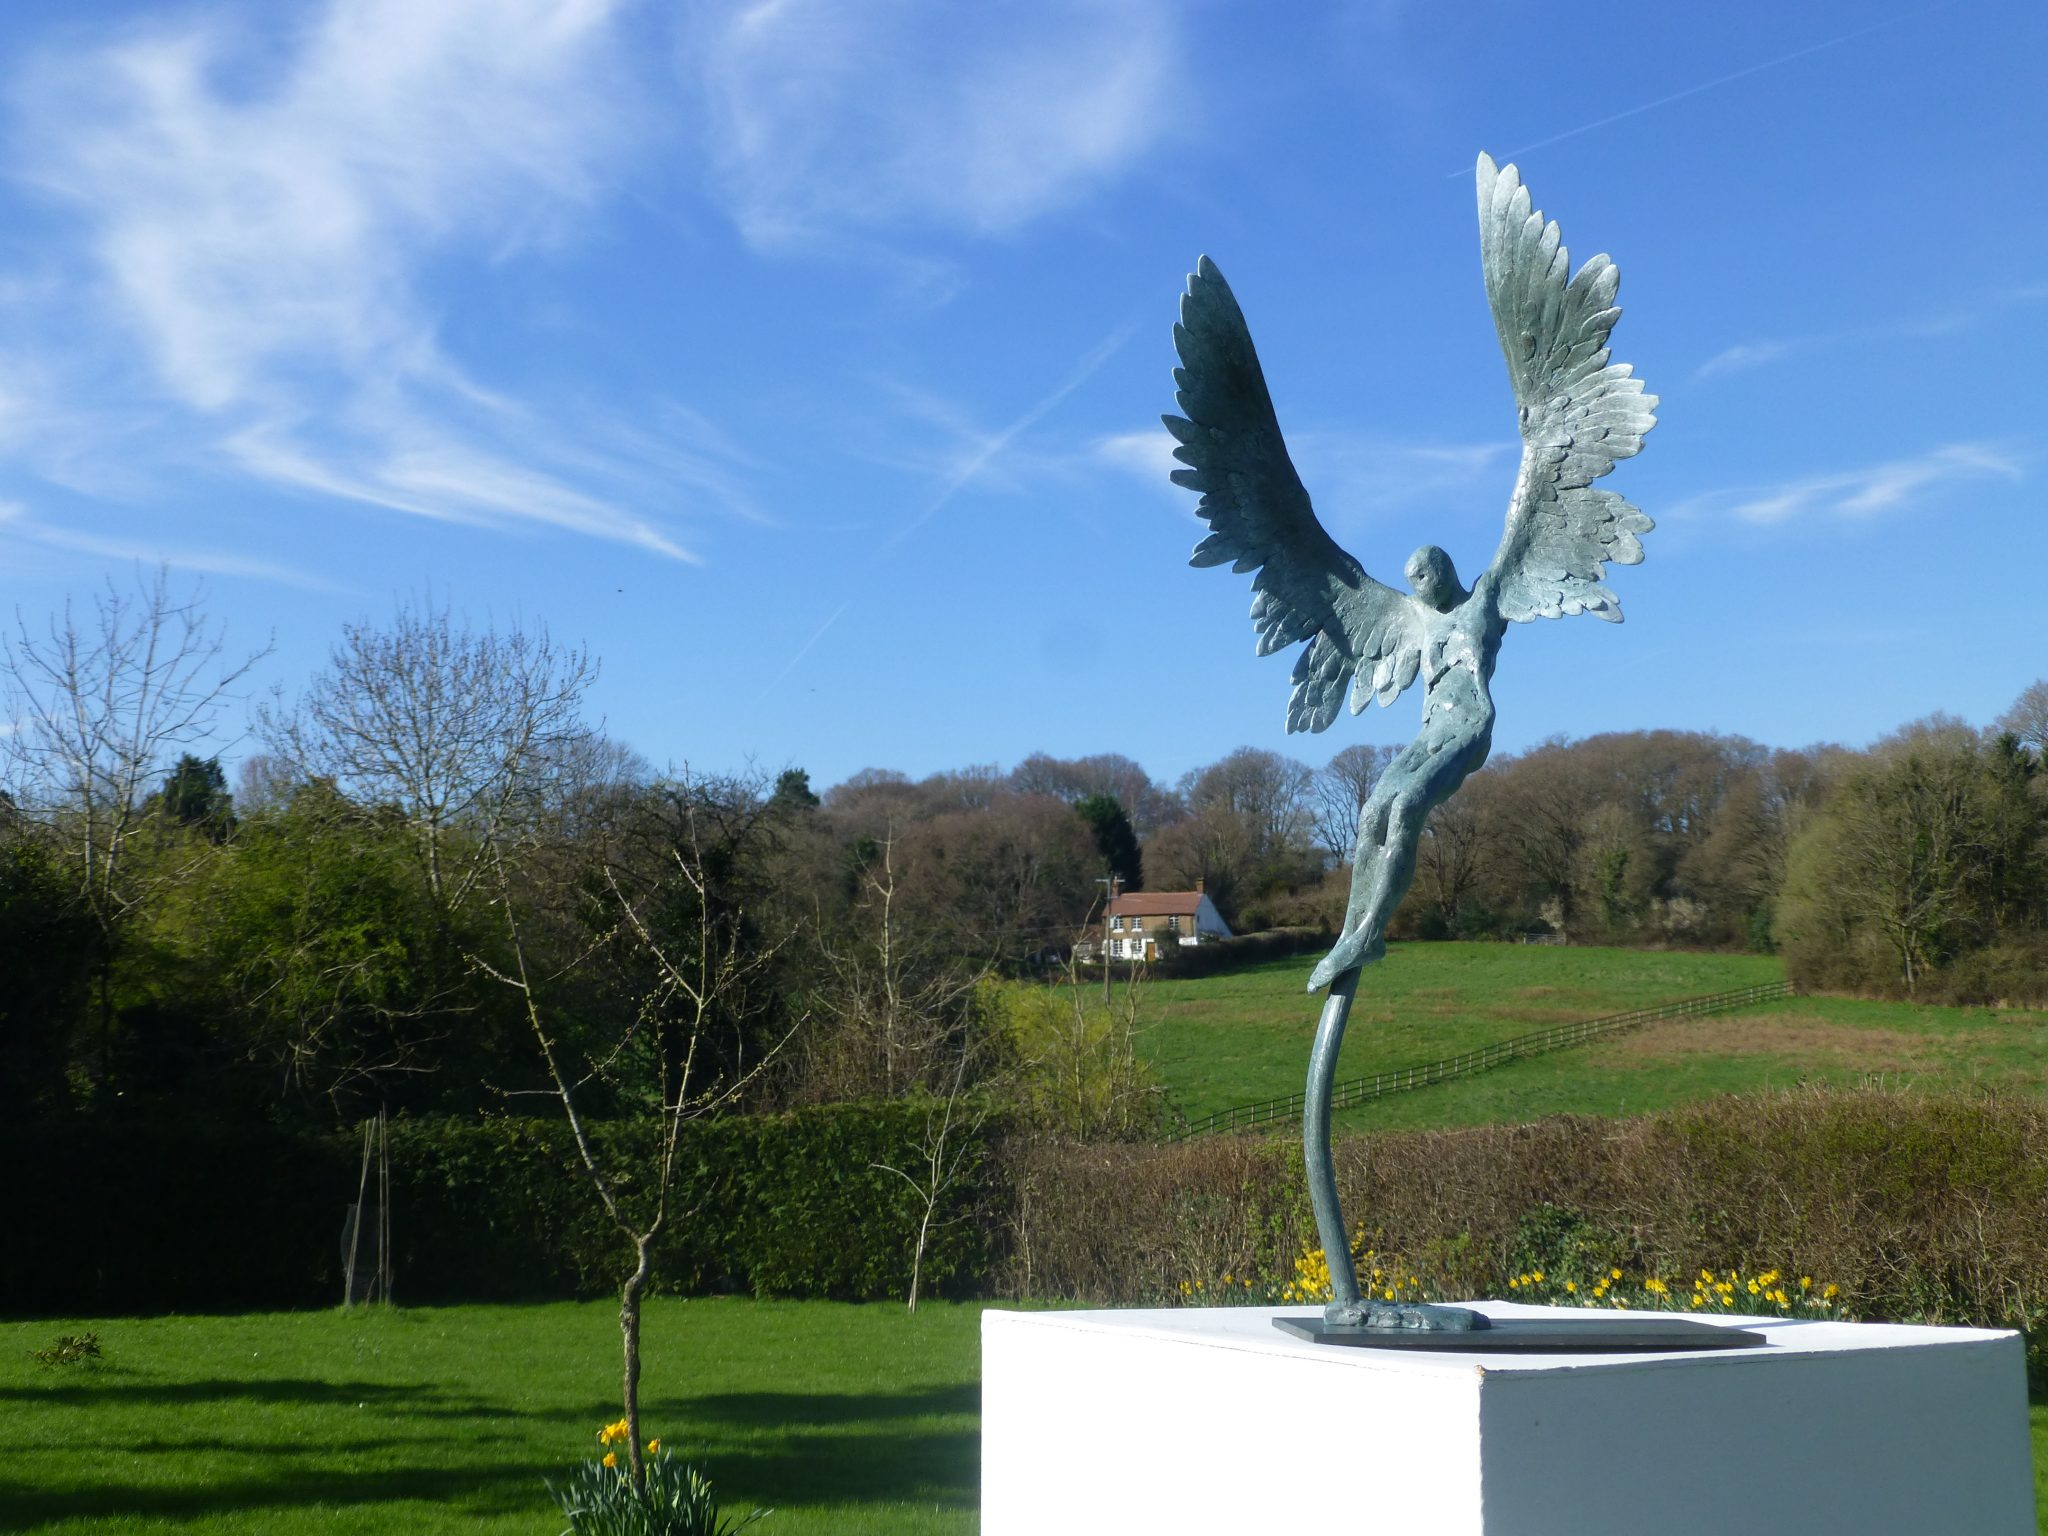 Icarus IV bronze sculpture for sale